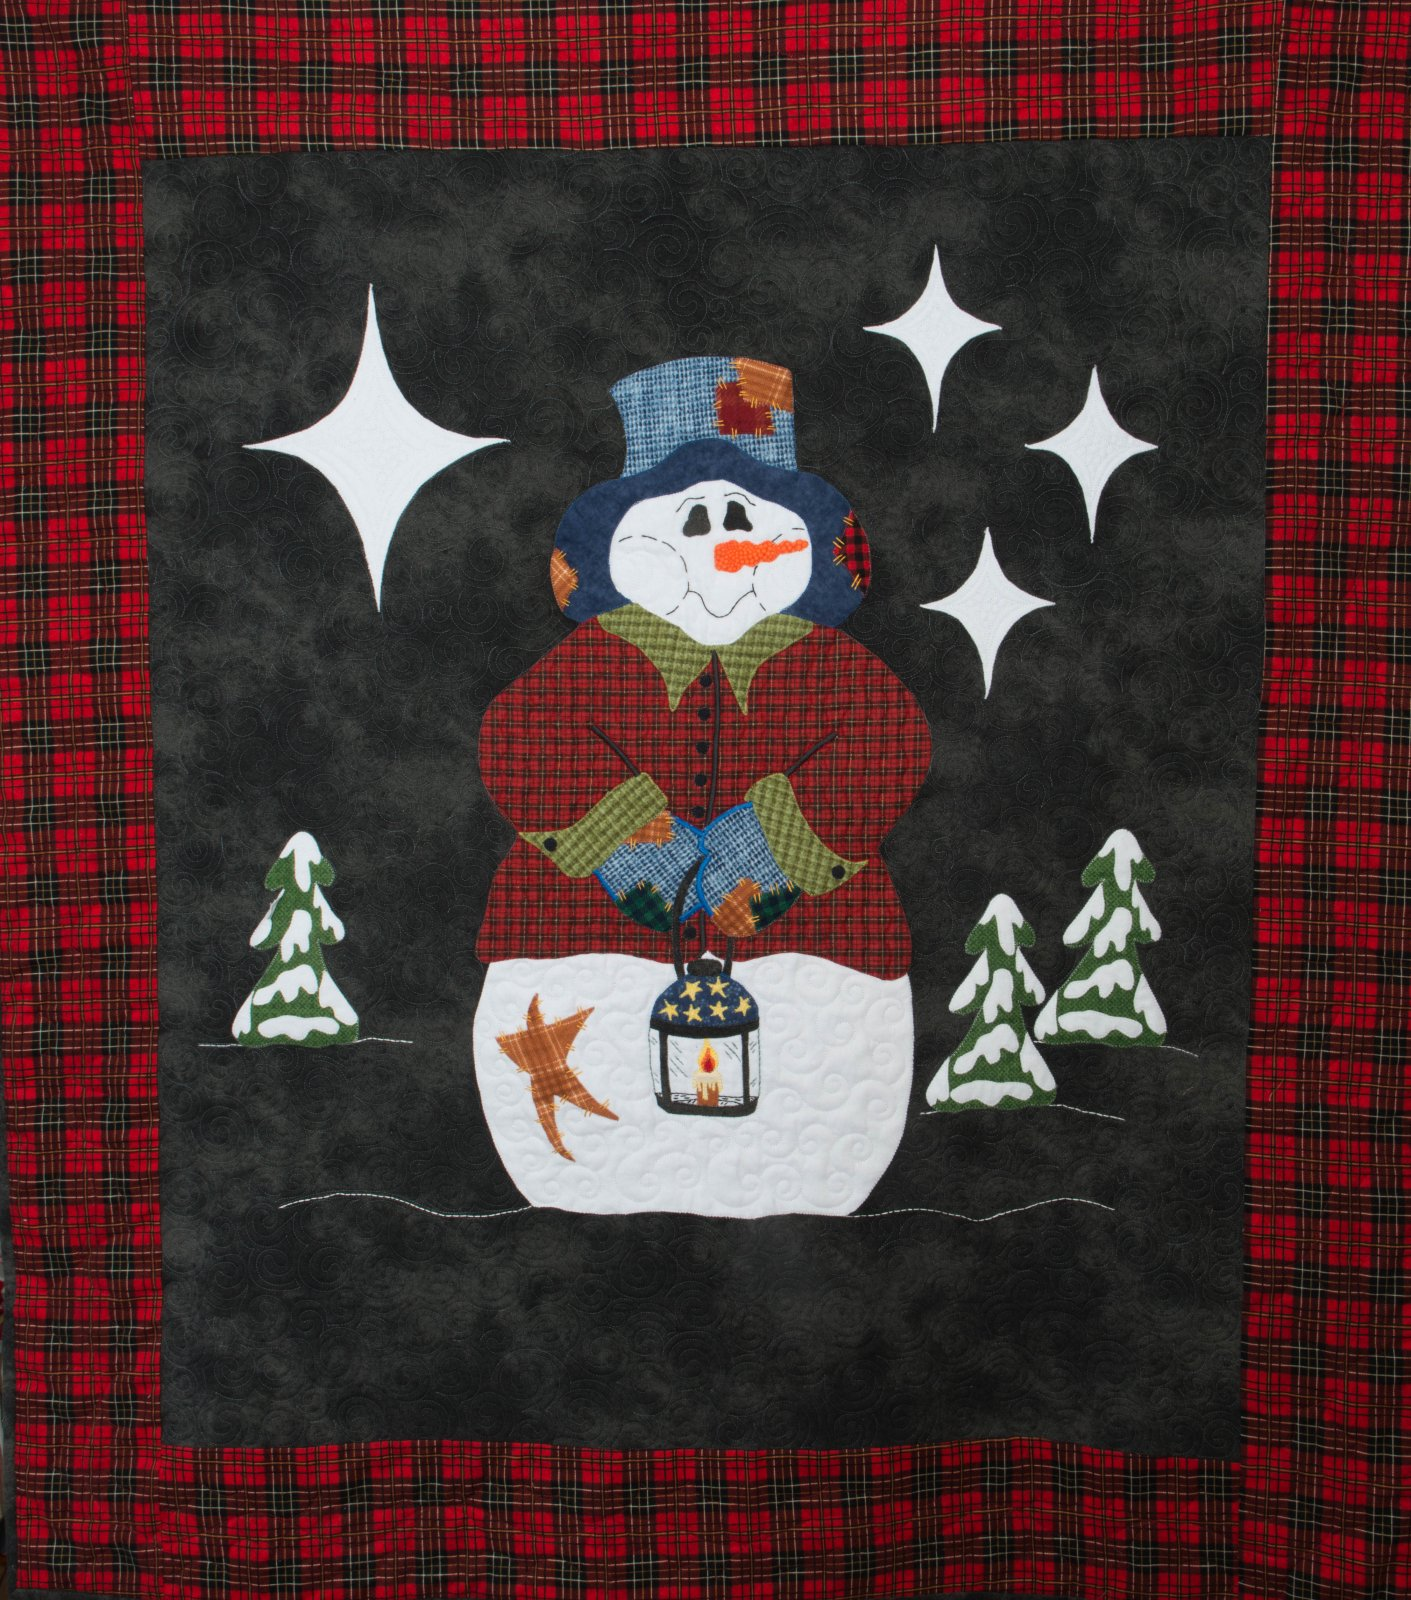 A Frosty Night - Applique'